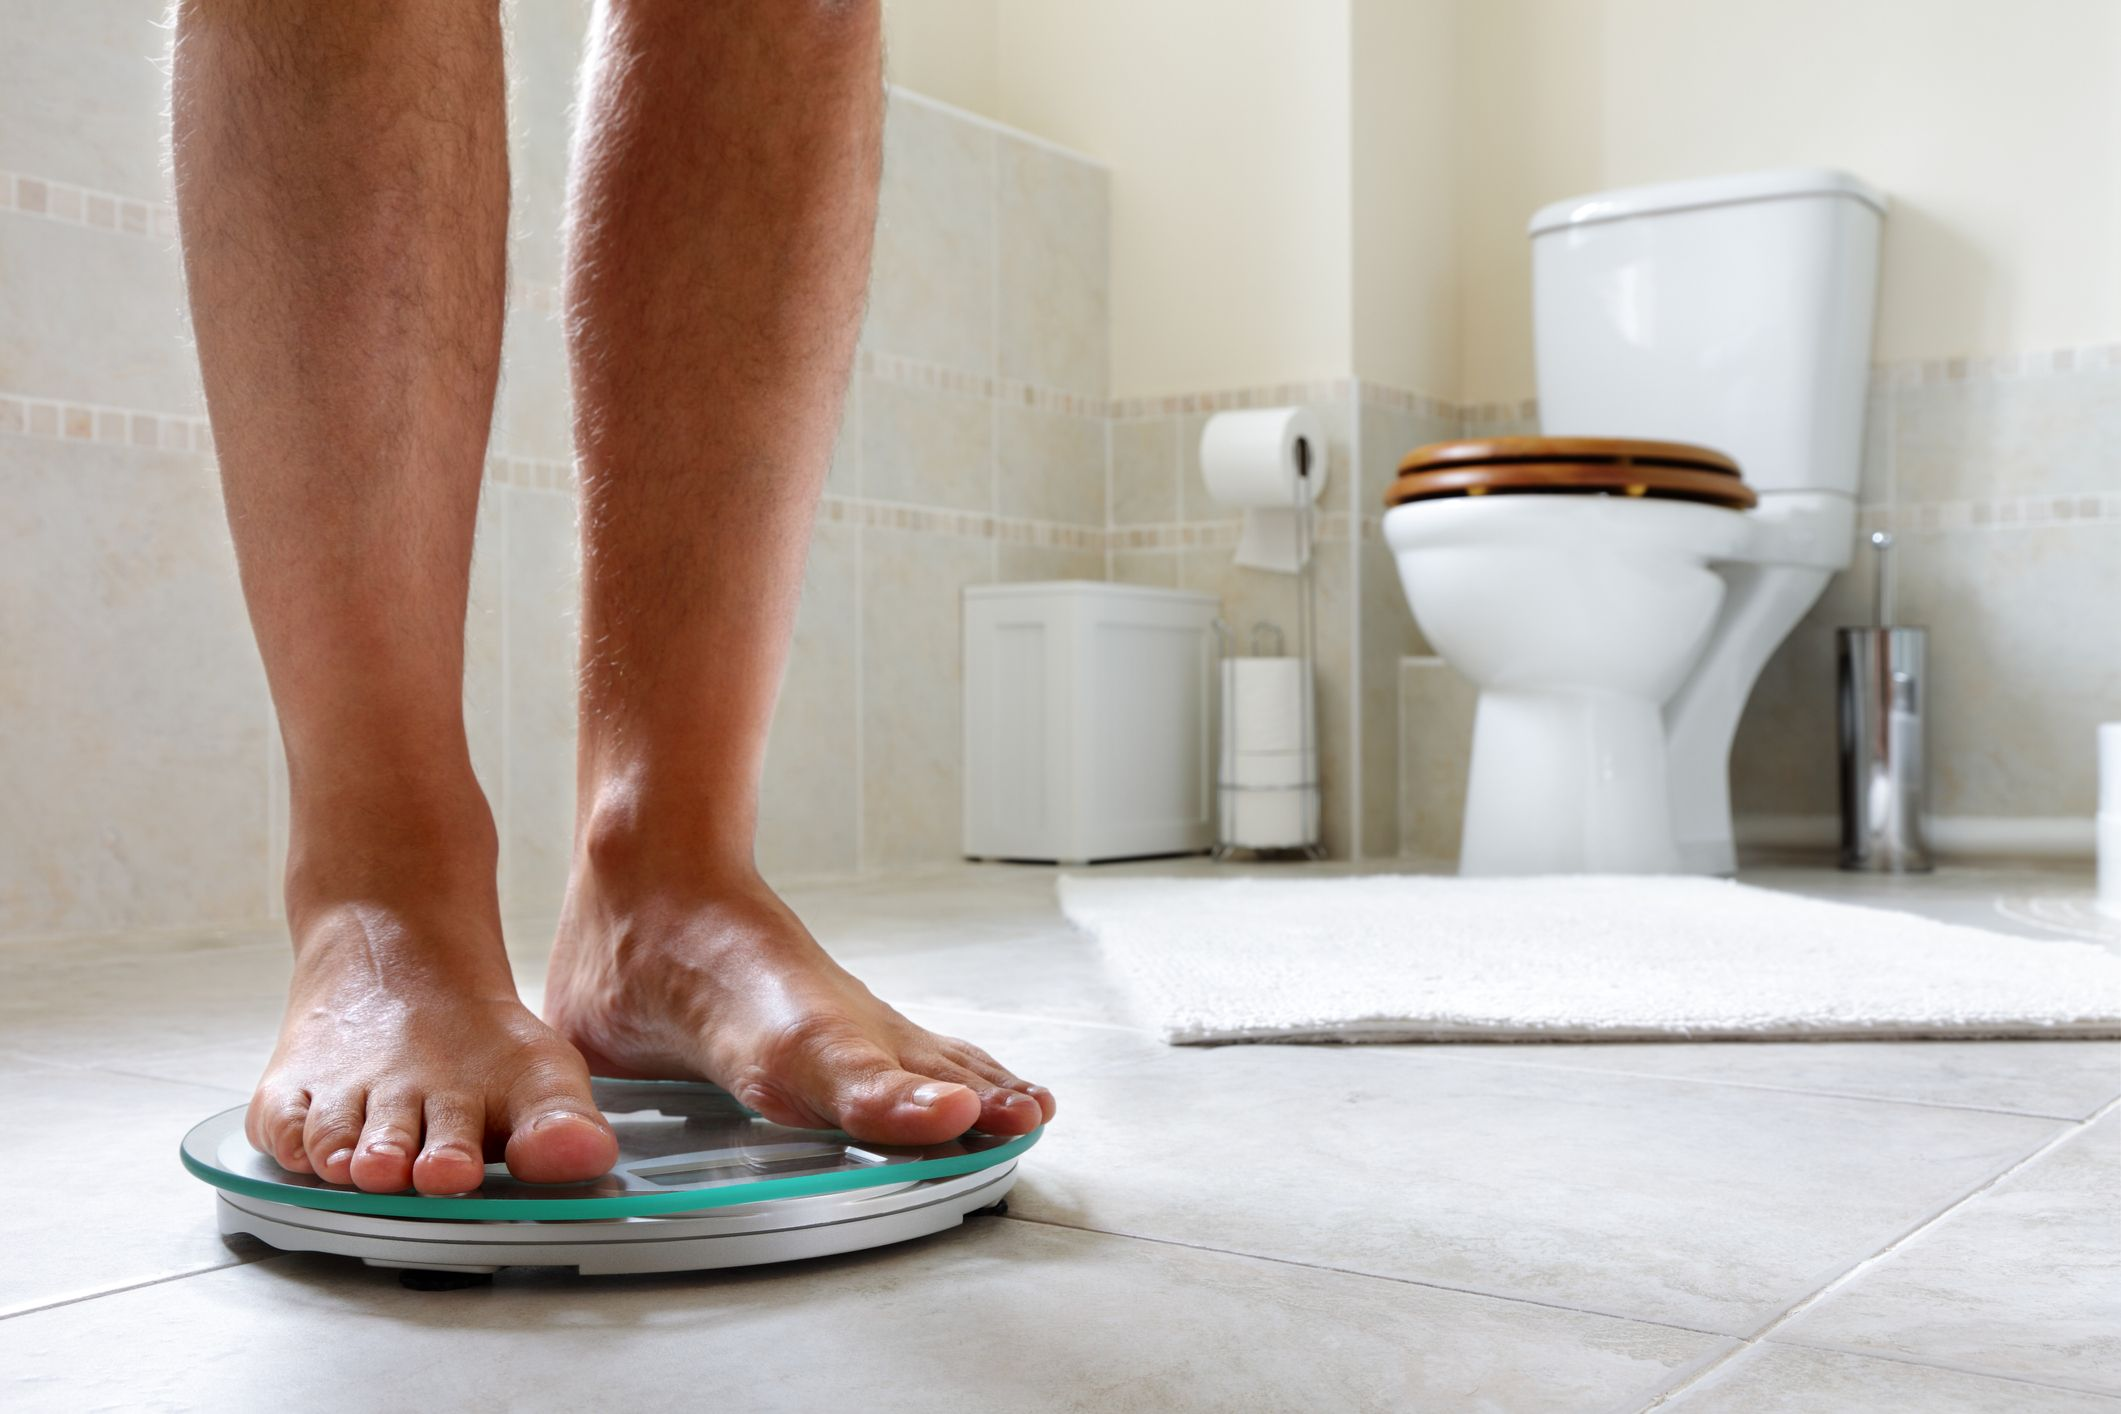 What Happens to Your Weight When You Poop